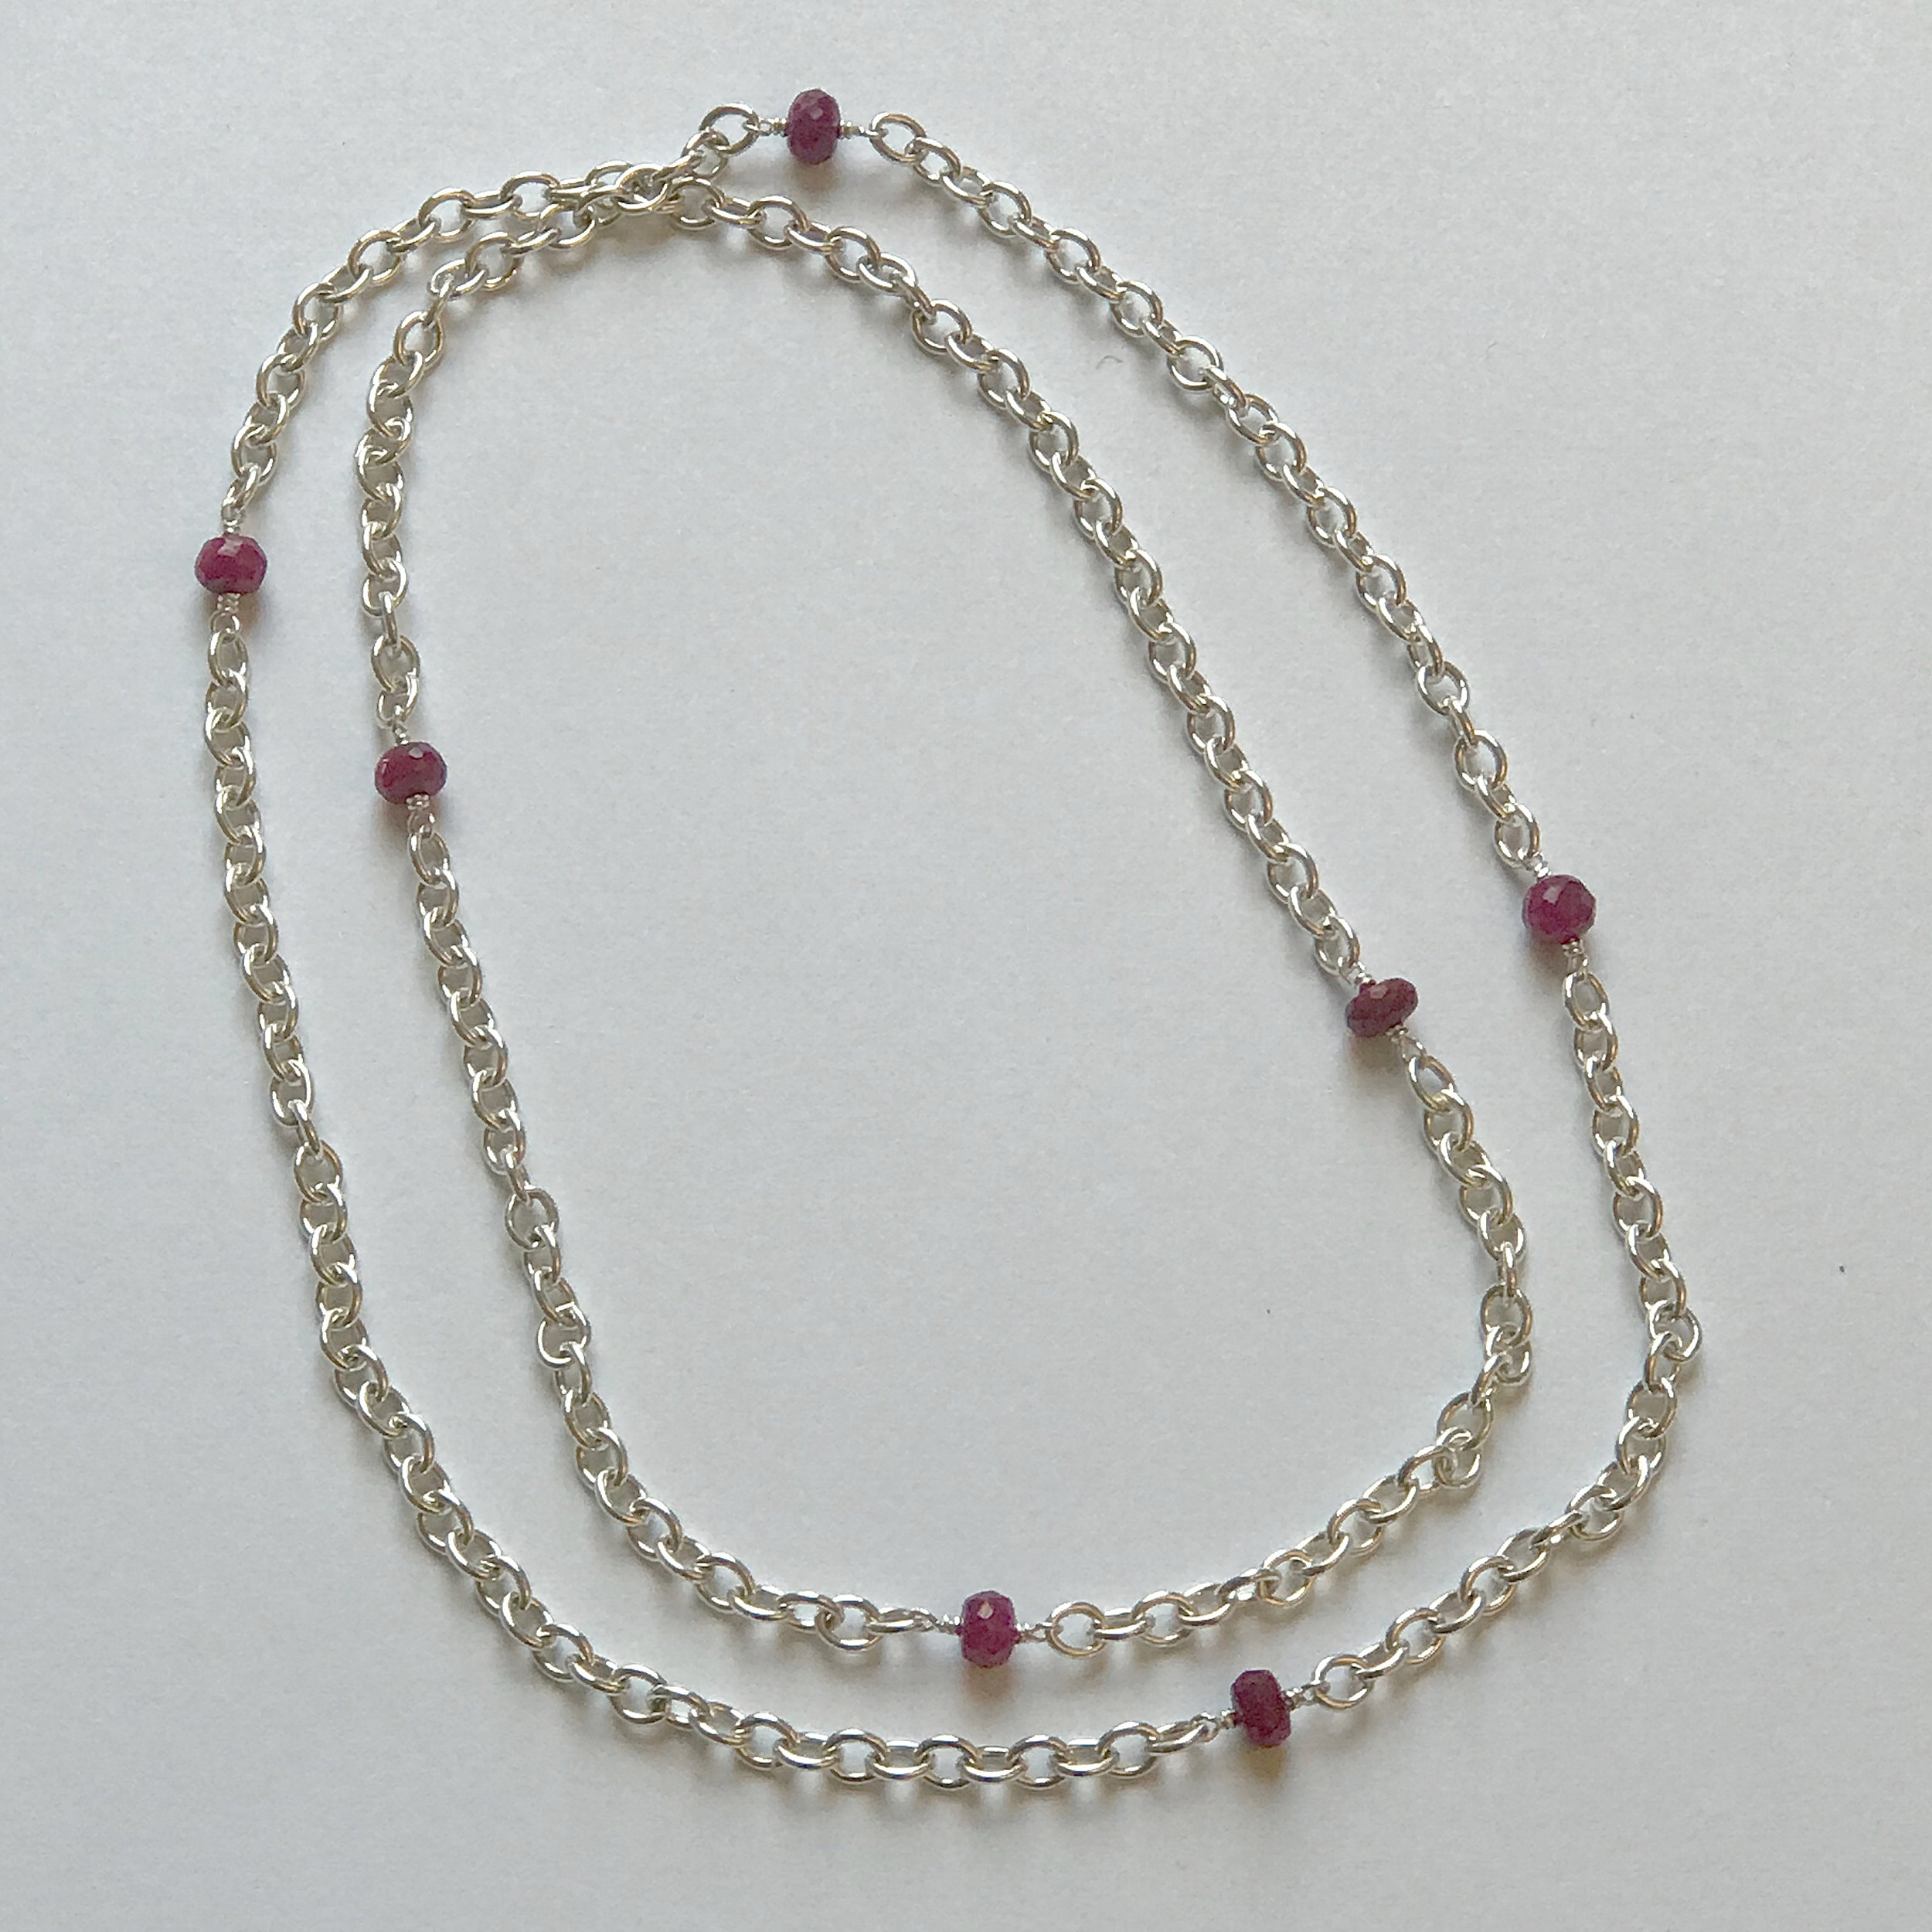 "$350 Sterling Silver Dyed Ruby Necklace 27"" Total"